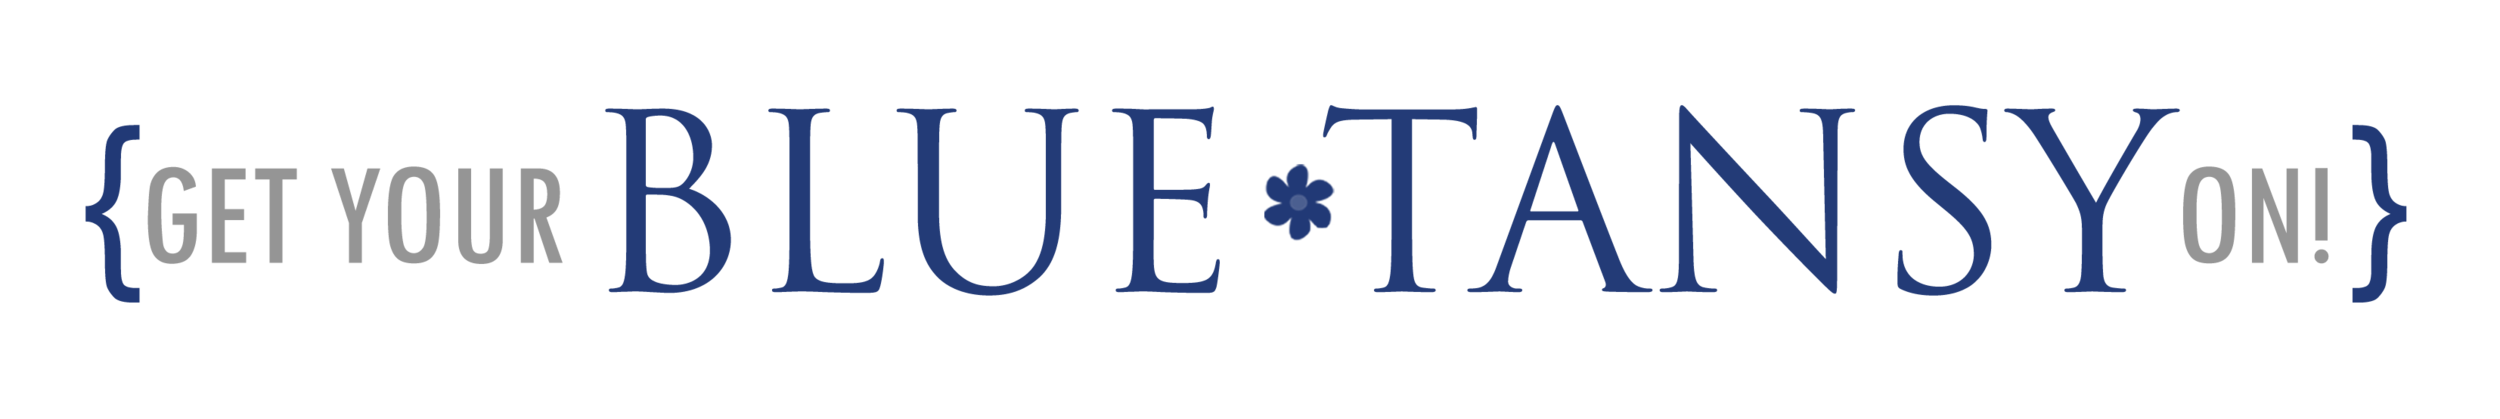 Get your blue tansy on logo.jpg